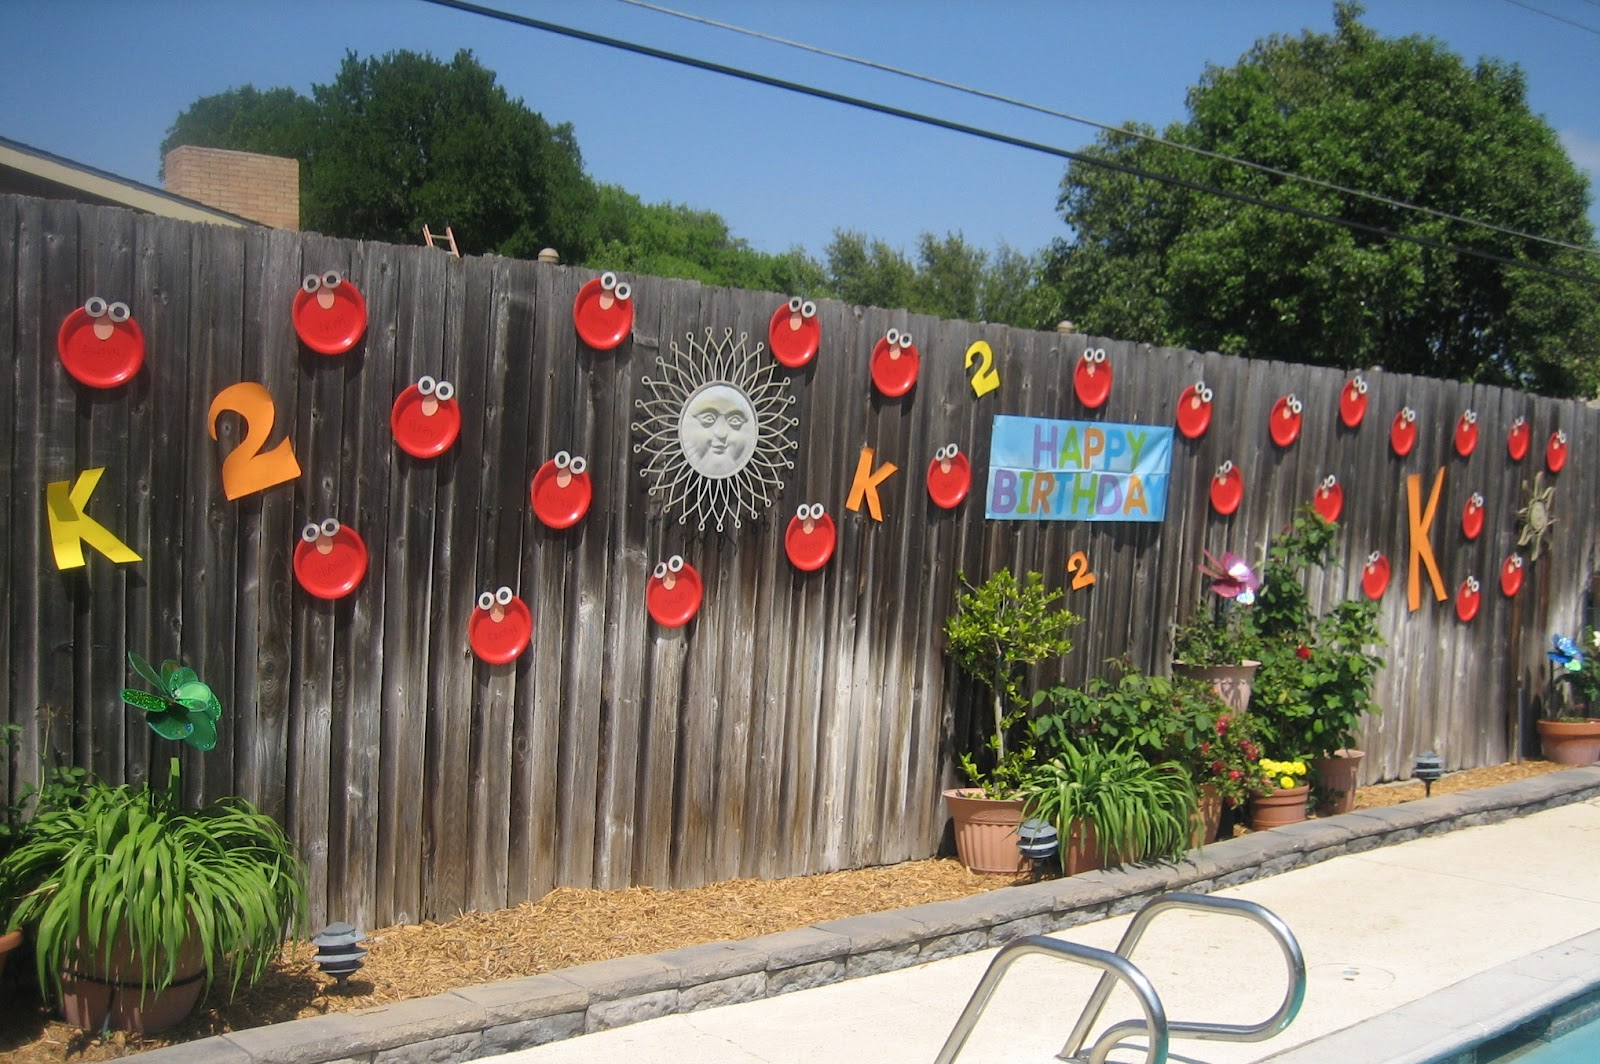 Villa vinson sunny days on sesame street party for Outdoor garden fence decoration